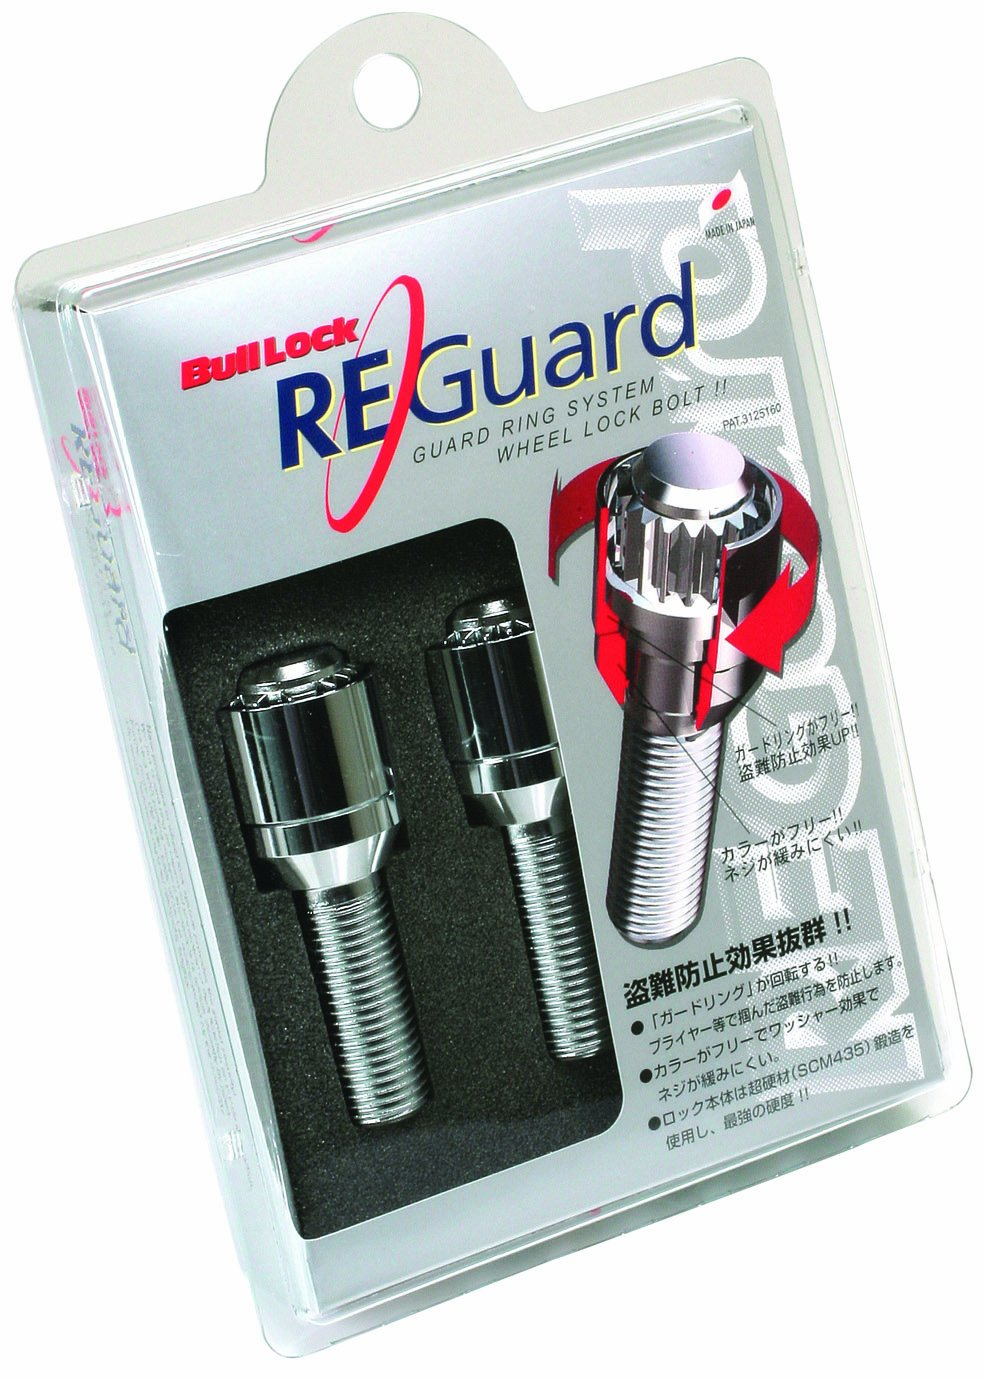 KYO-EI [ 協永産業 ] Bull Lock REGuard BOLT [ M14XP1.5 ] 13R 28mm [ 個数:4P ] [ 品番 ] R670-28 B007K3L6M6